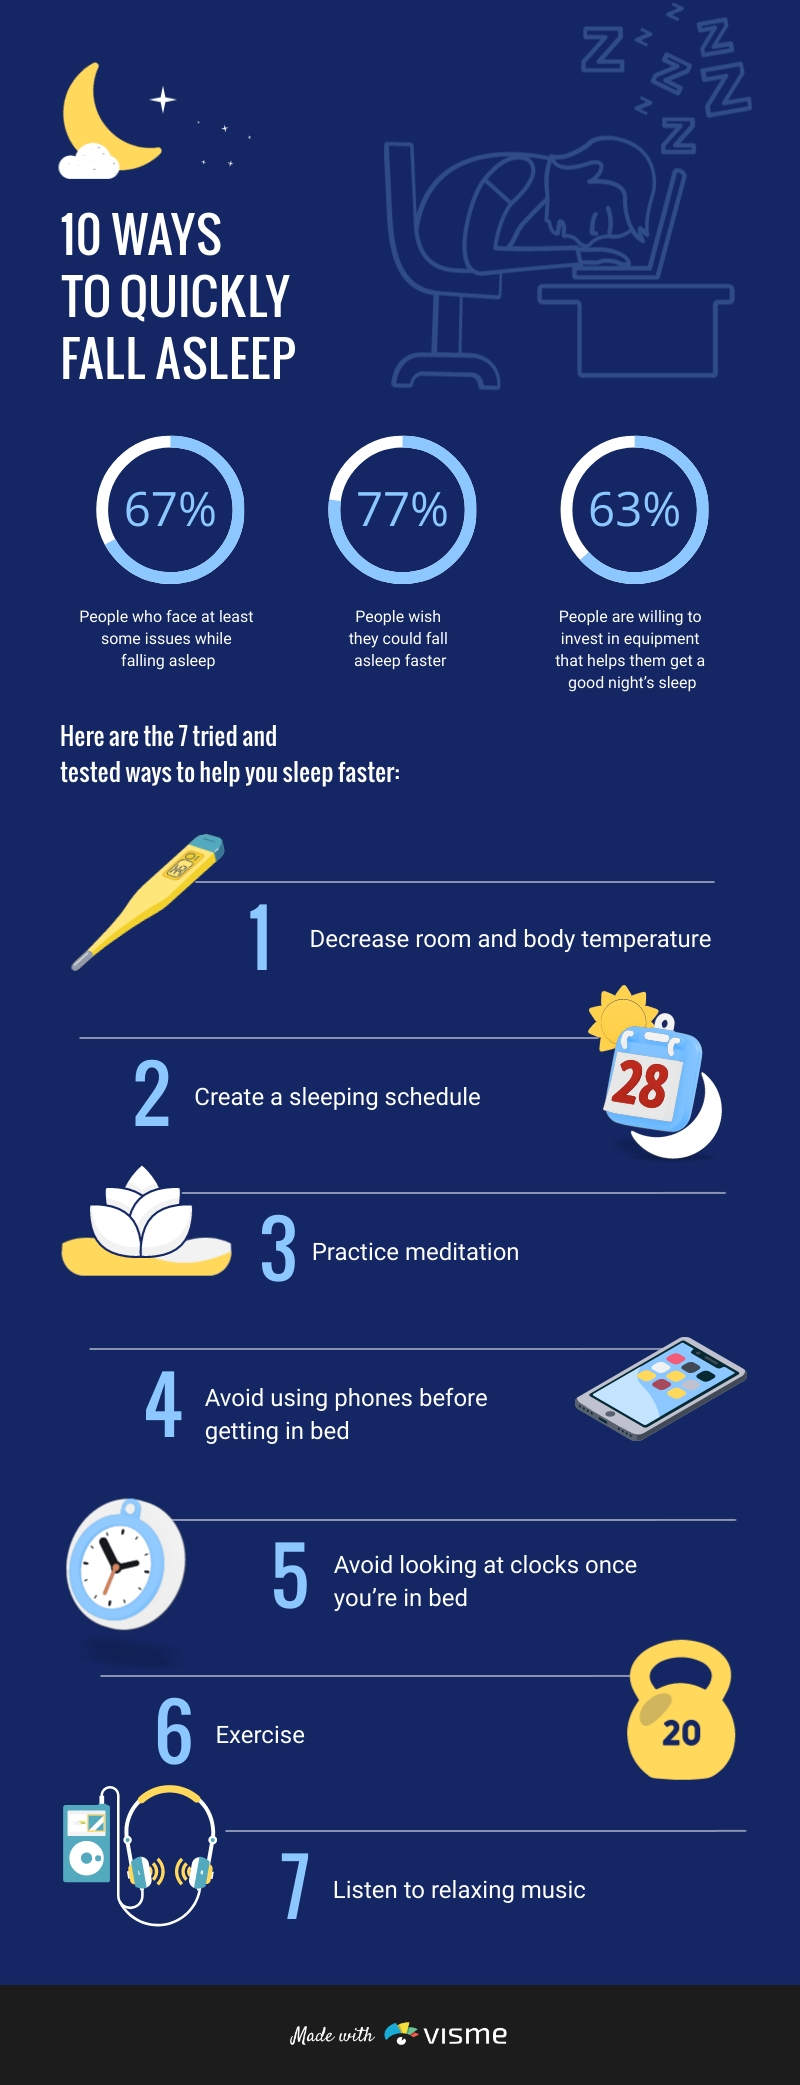 10 Ways to Quickly Fall Asleep - Infographic  Template